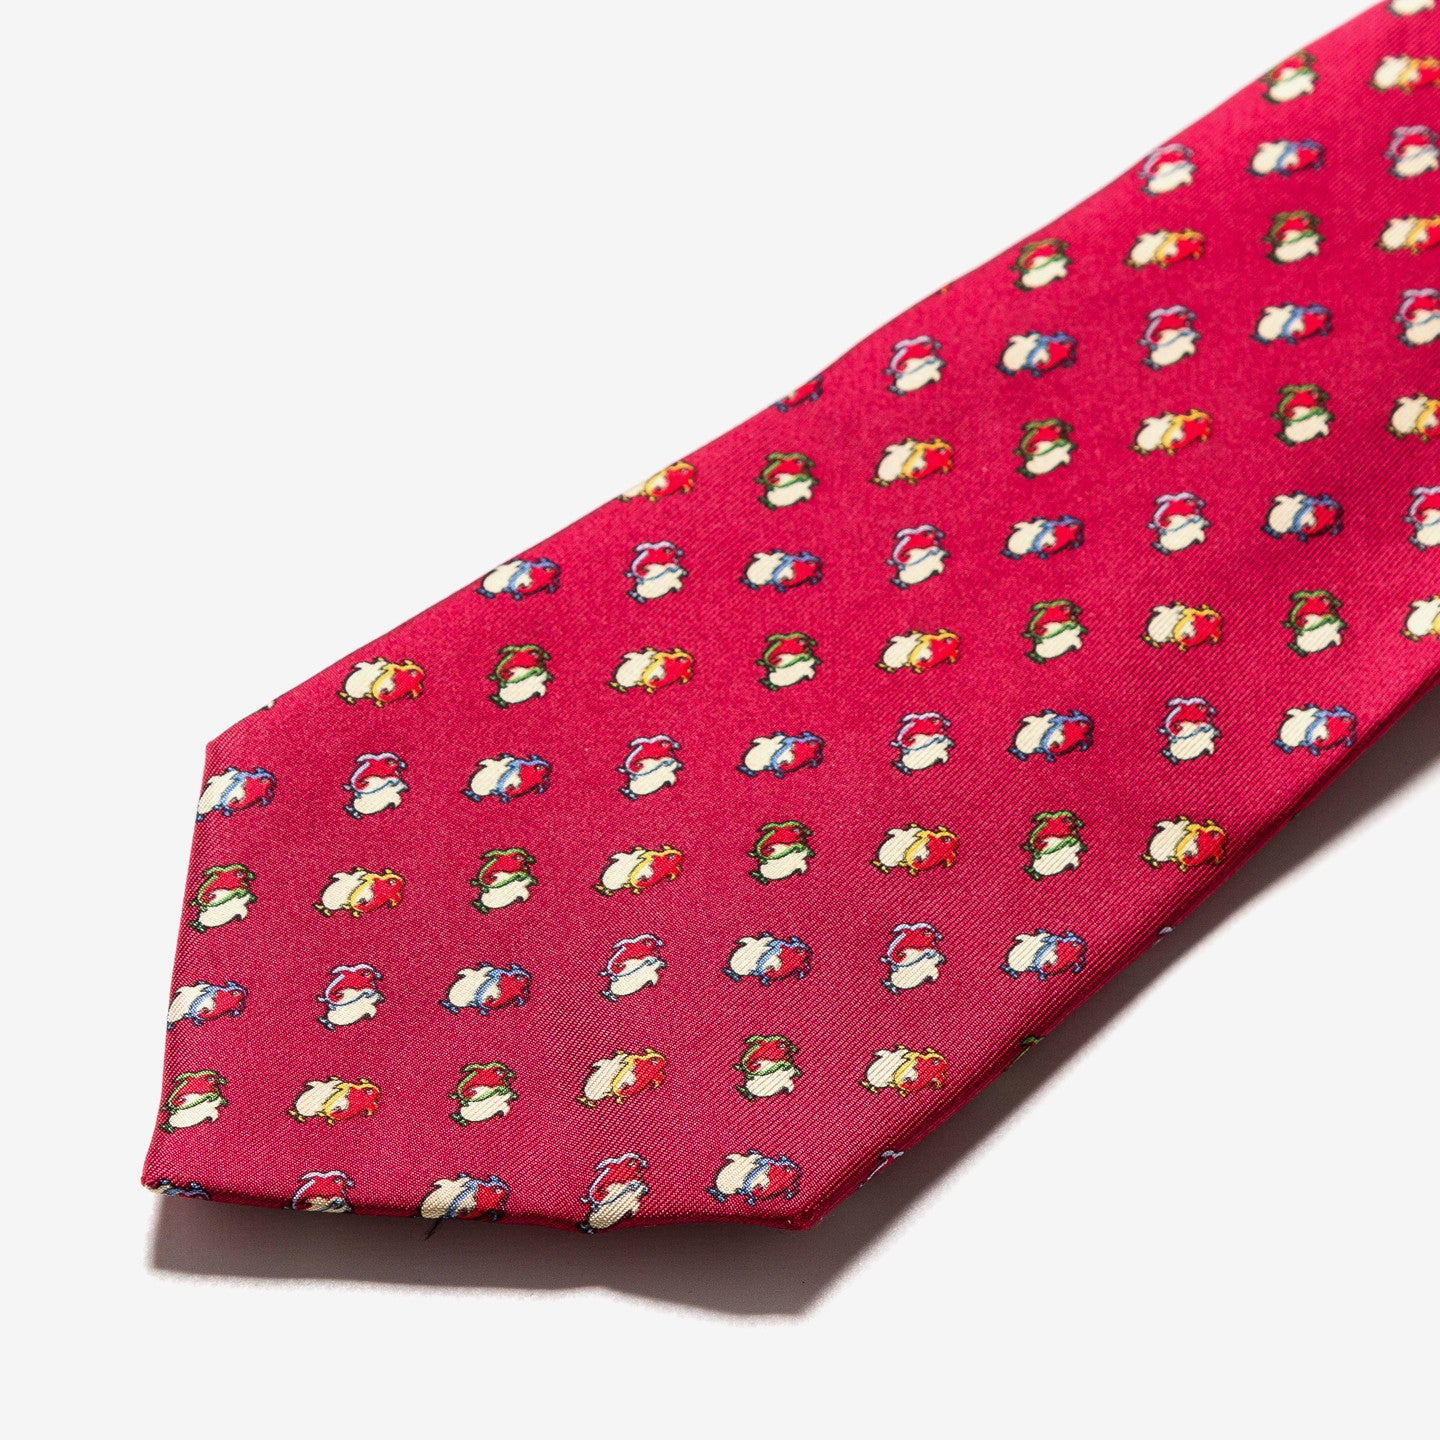 Salvatore Ferragamo / Printed Red Silk Tie